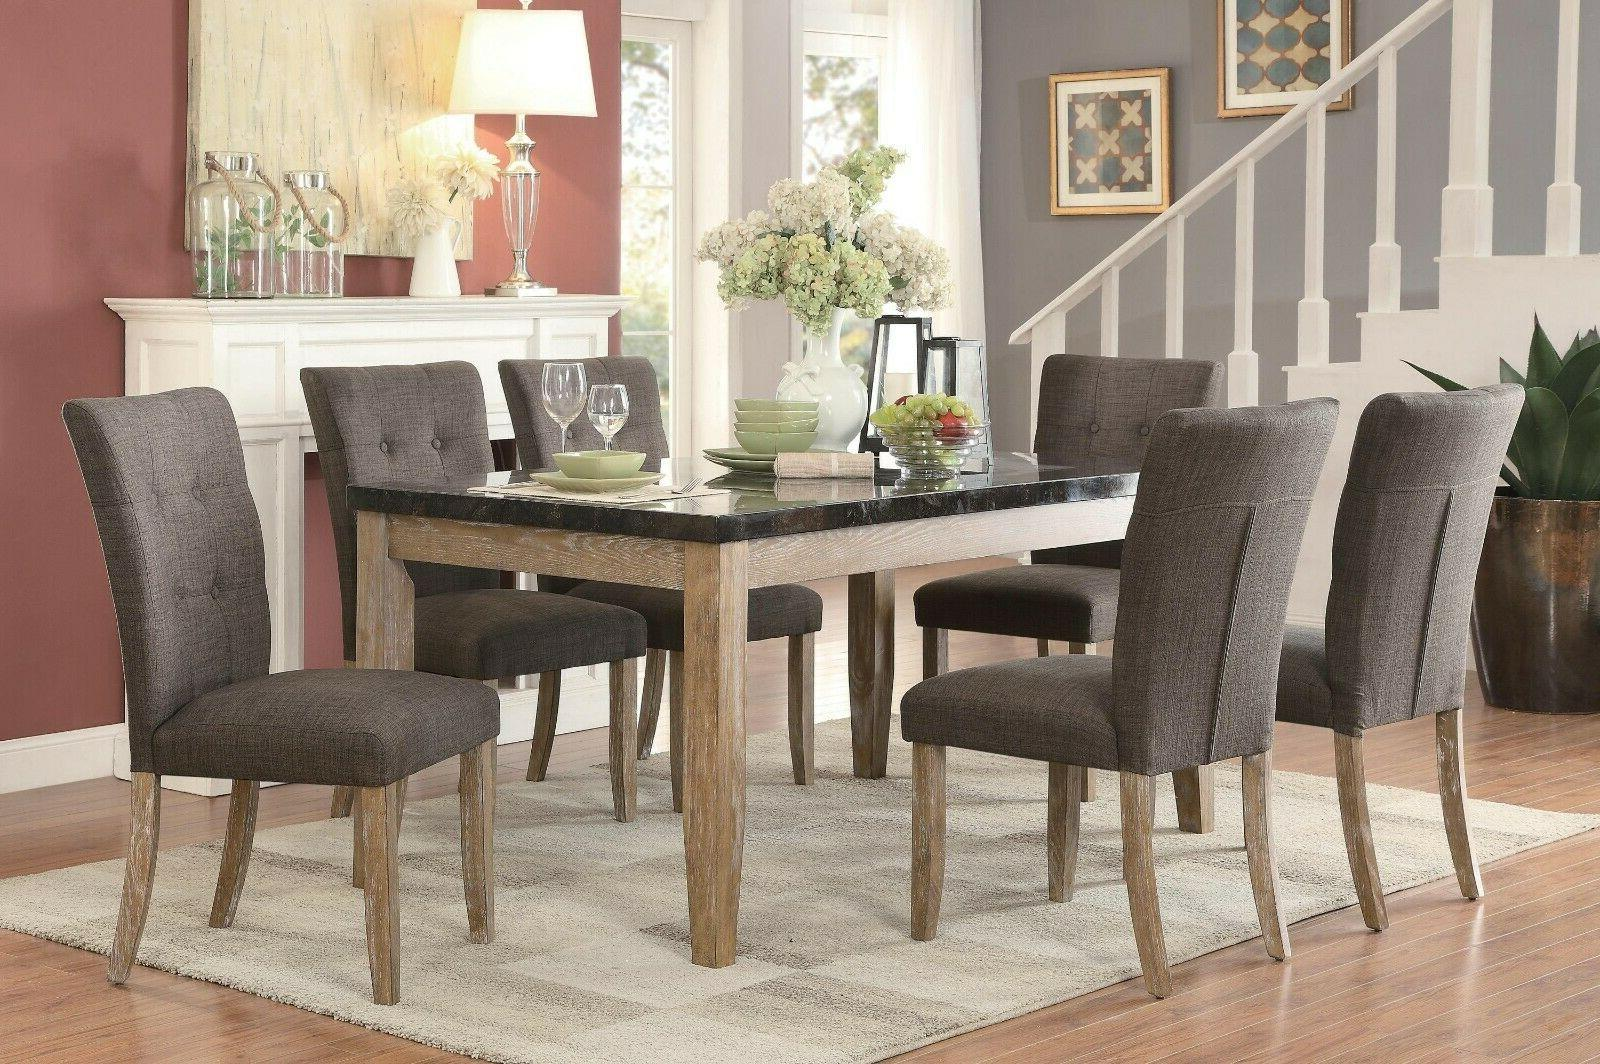 SLEEK DINING TABLE W/ FAUX BLUE STONE MARBLE TOP DINING CHAI